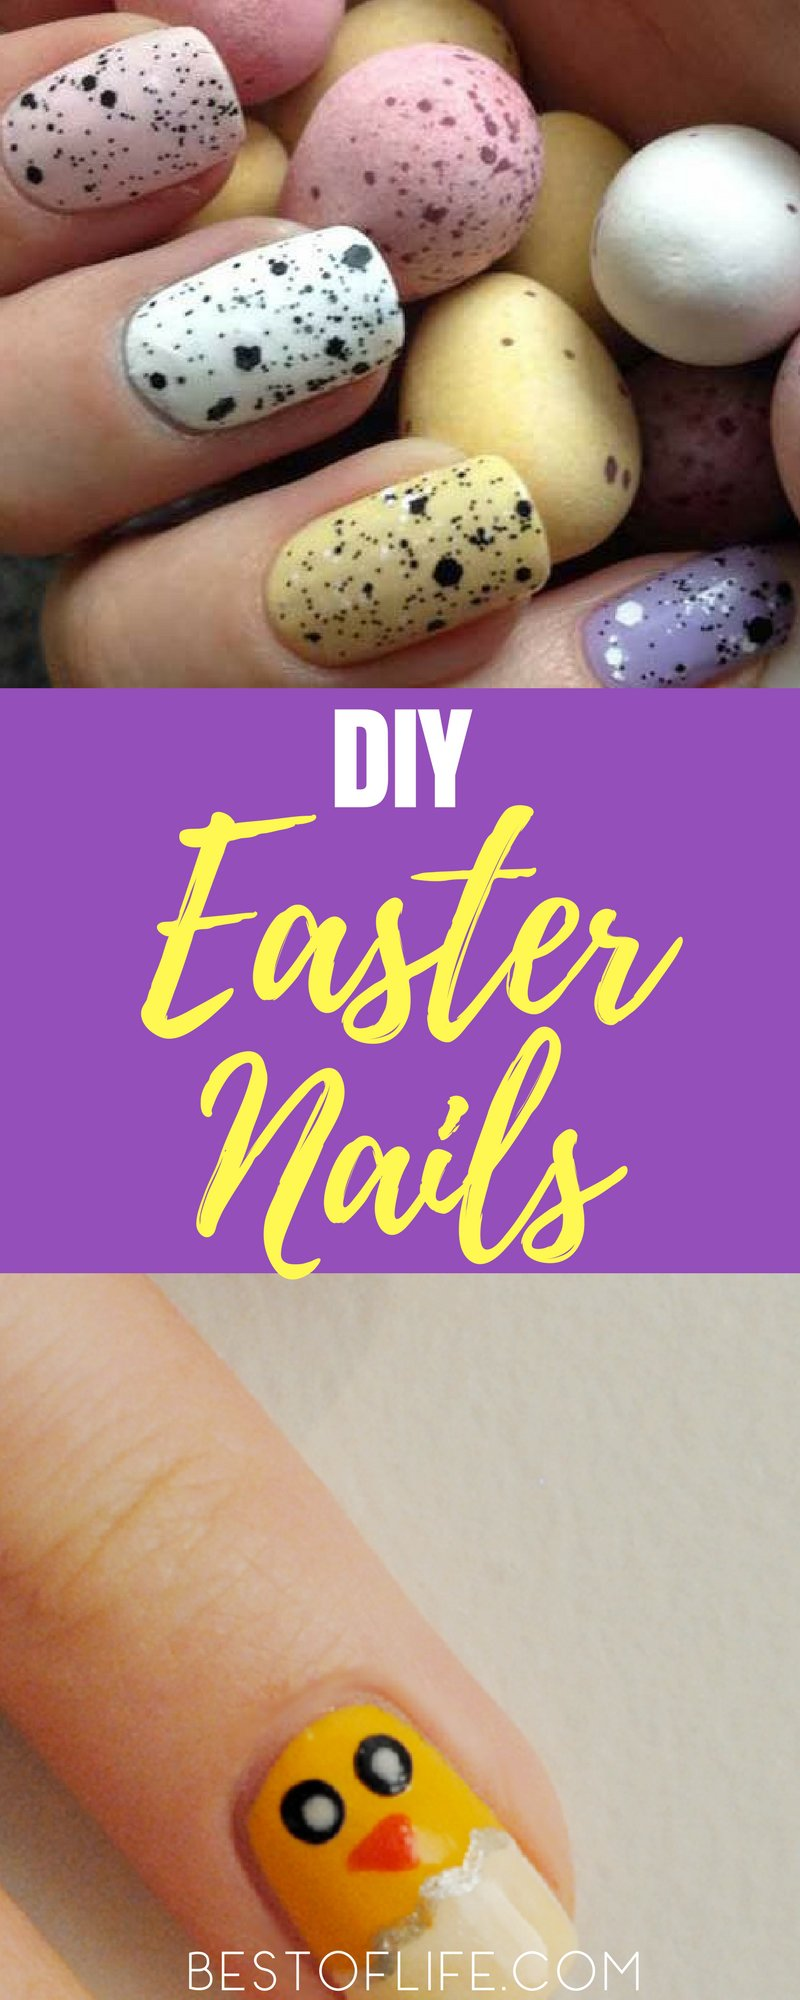 The best Easter nails can be designed to fit your personality, Easter outfit, or just help you get in the spirit of the holiday. Even better, most are easy nail designs. Easter Nail Ideas | Easter Nail Designs | Best Easter Nail Design Ideas | Easy Easter Nail Design Ideas | Fun Easter Nail Design Ideas